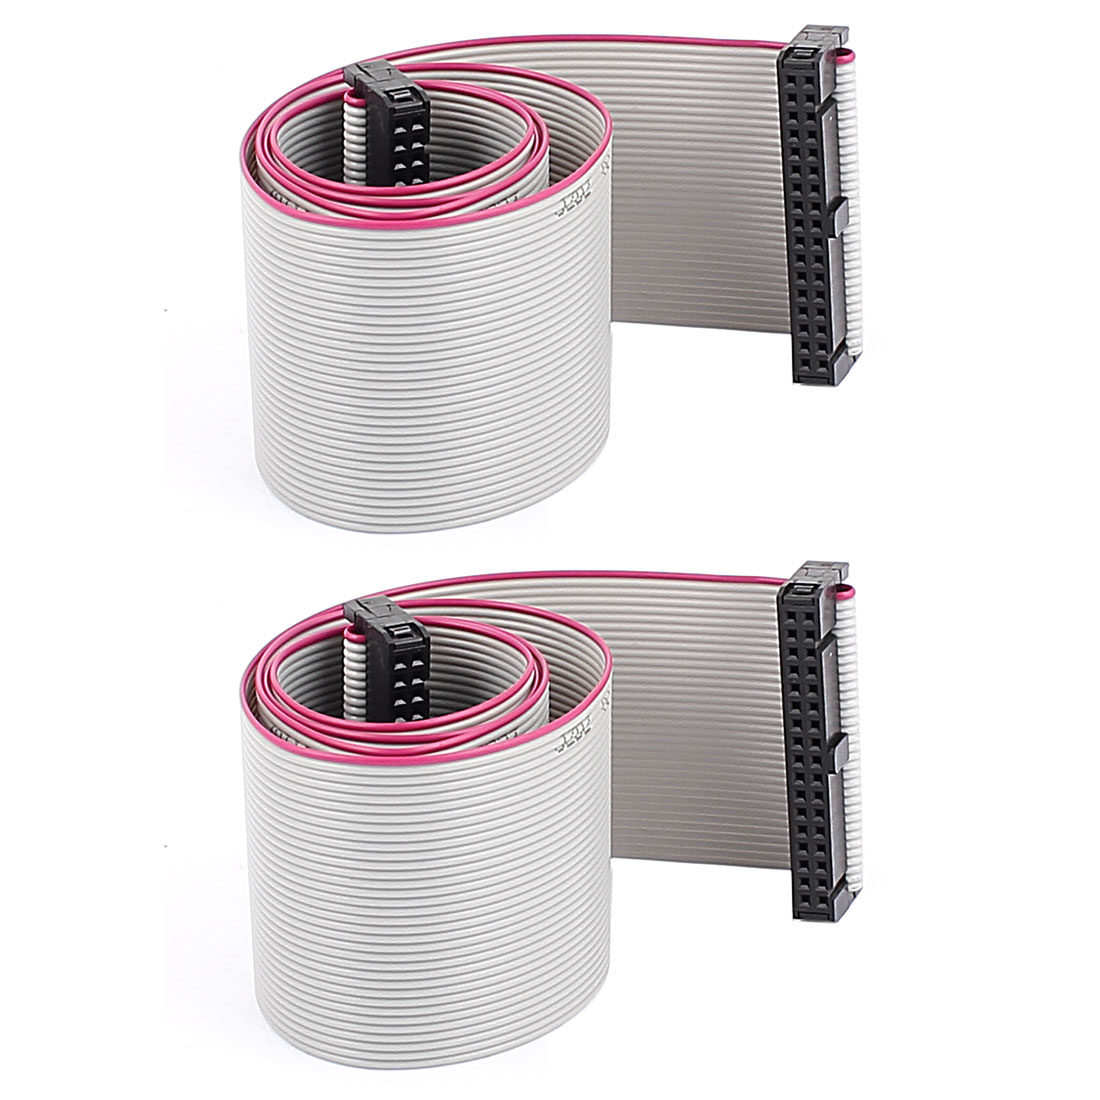 2PCS 58cm Length 34 Pin 2.54mm Pitch IDC Ribbon Cable for ISP JTAG ARM